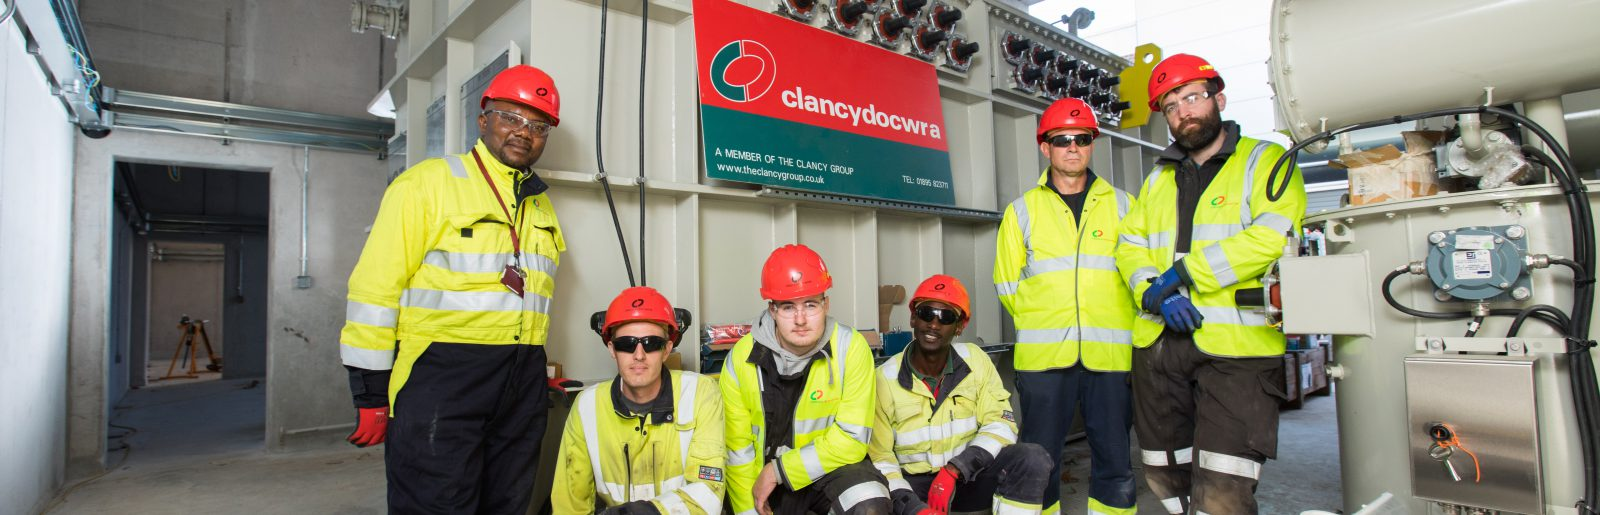 Our Policies - Clancy Docwra